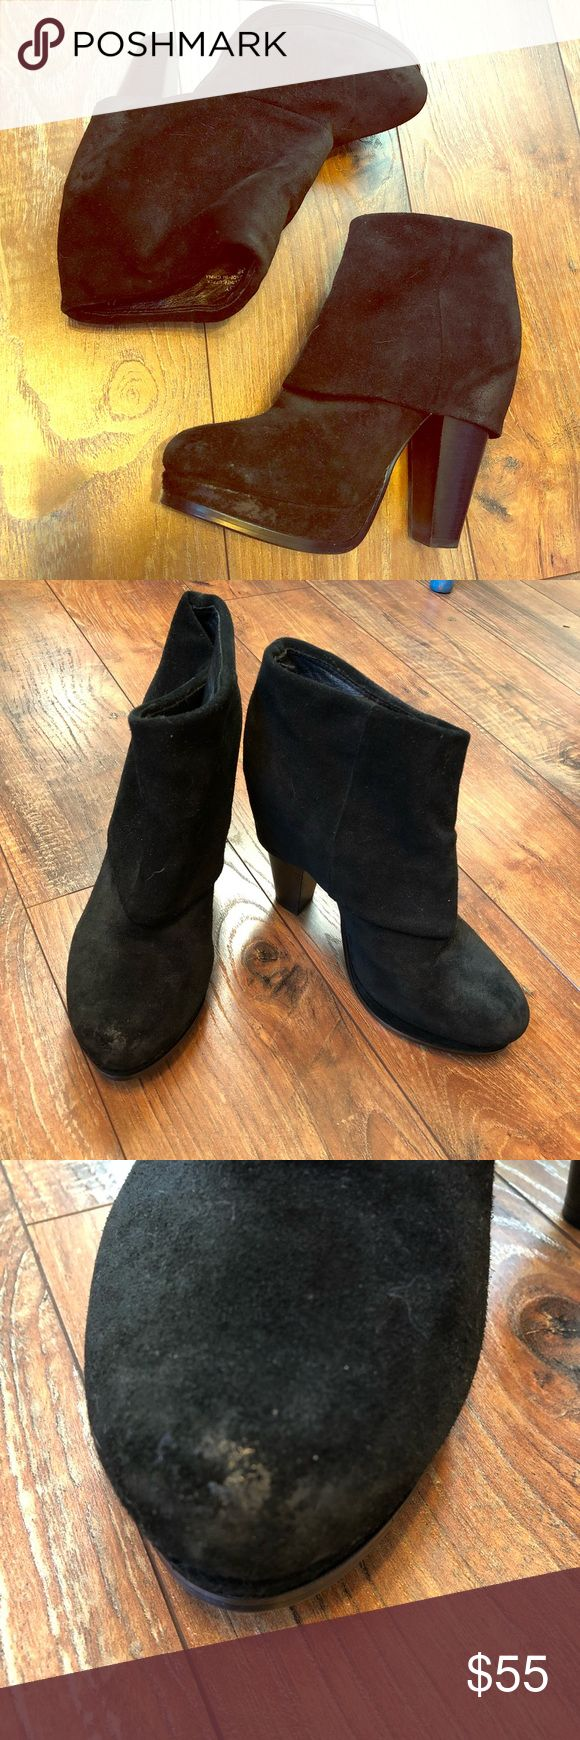 Ash distressed black suede fold over booties Ash distressed black suede fold over booties size 8 (38). No box. Suede is supposed to look distressed. Heel is 4.5 inches, platform is about 1 inch. Excellent condition Ash Shoes Ankle Boots & Booties